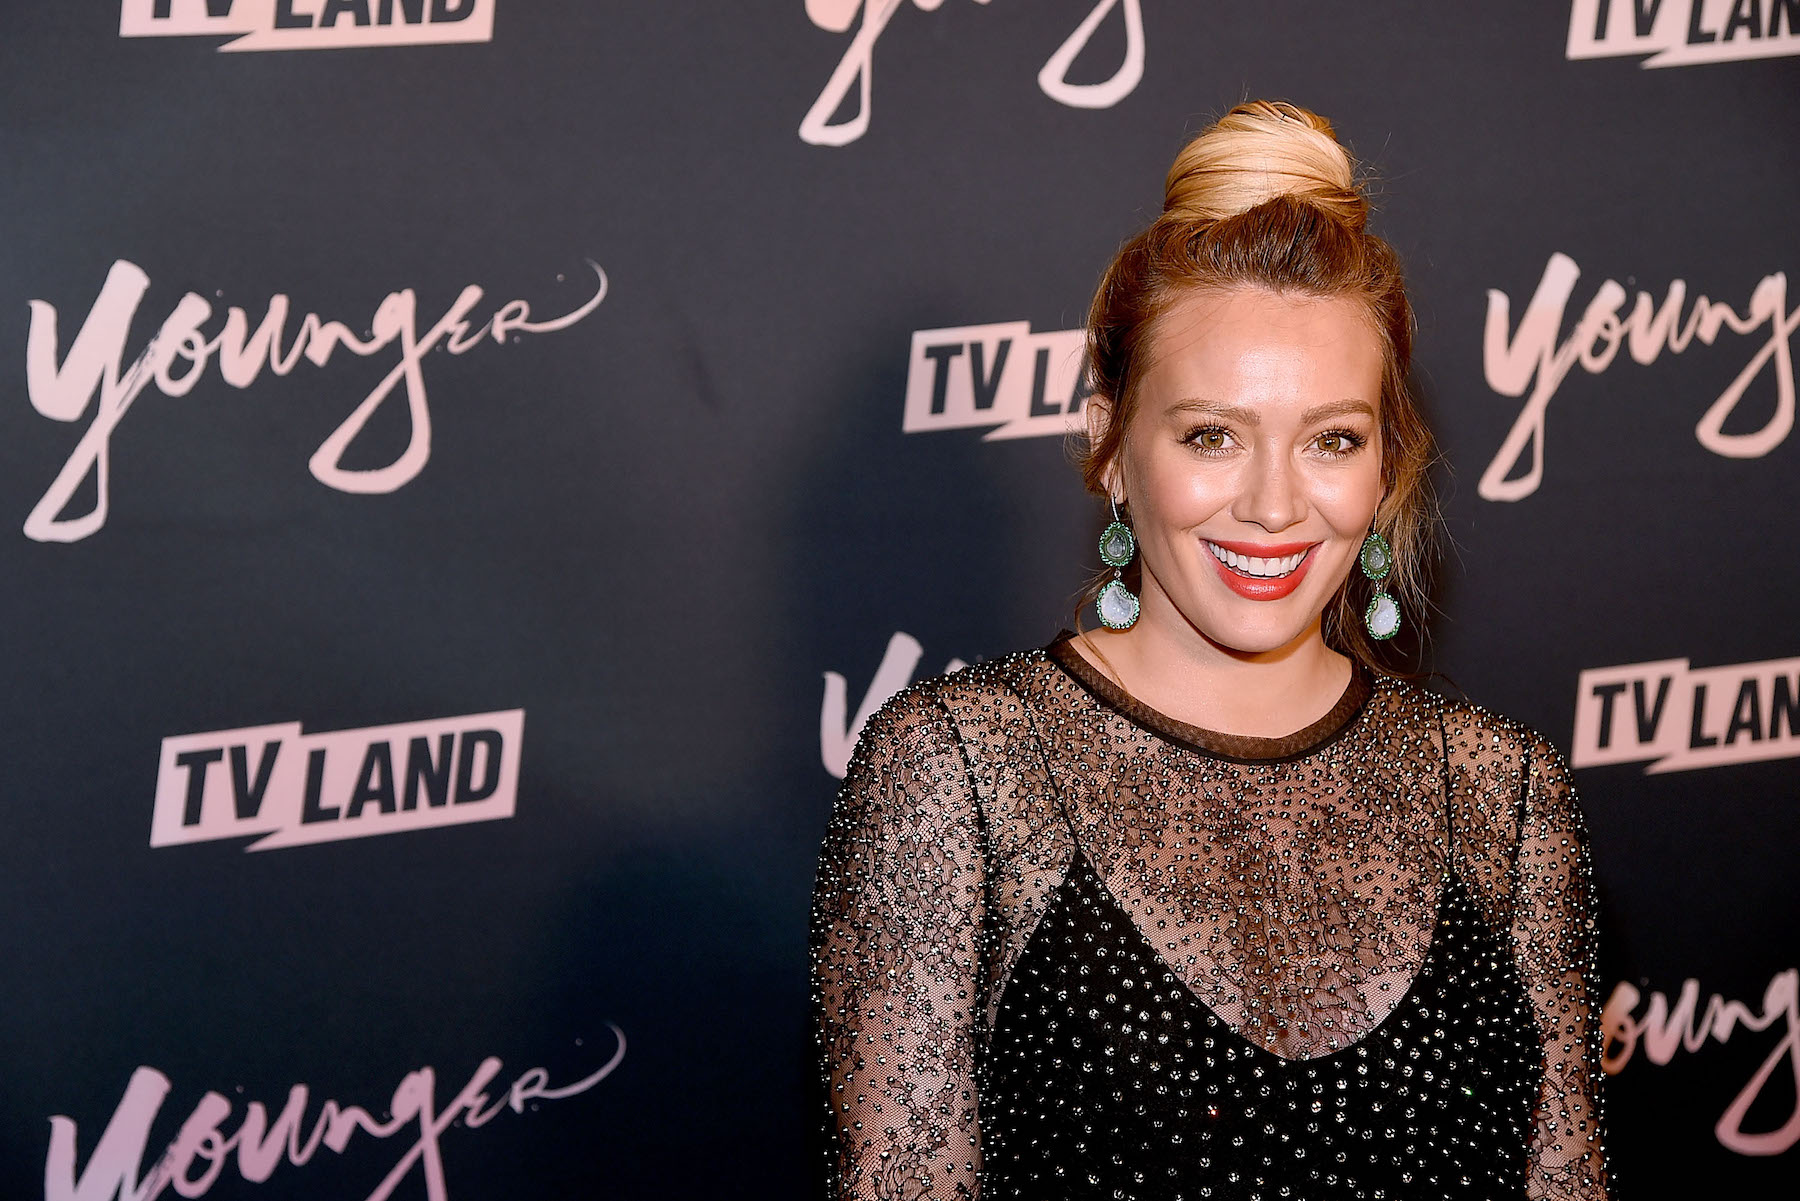 Hilary Duff at event for Younger